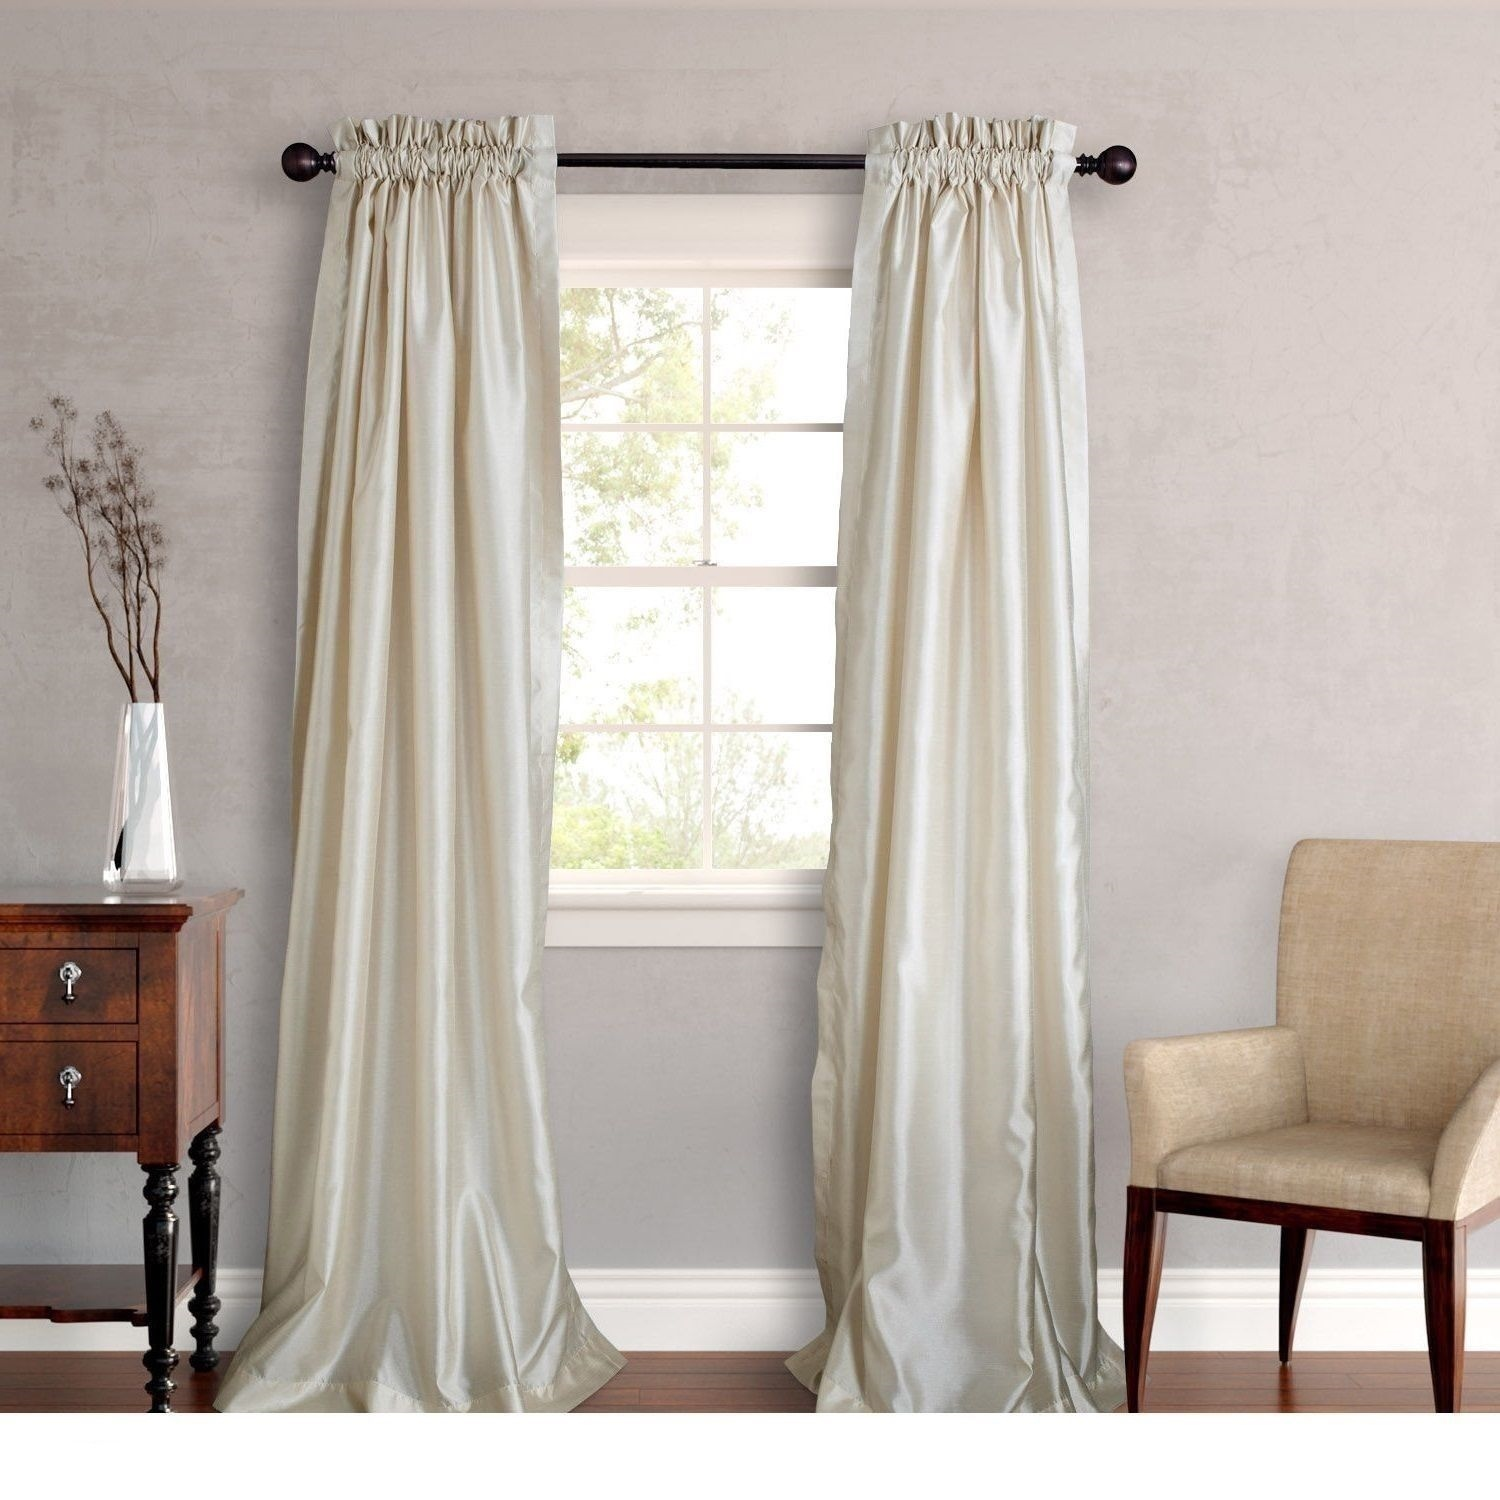 New Set 2 Window Curtains Panels Drapes Pair 108 Faux